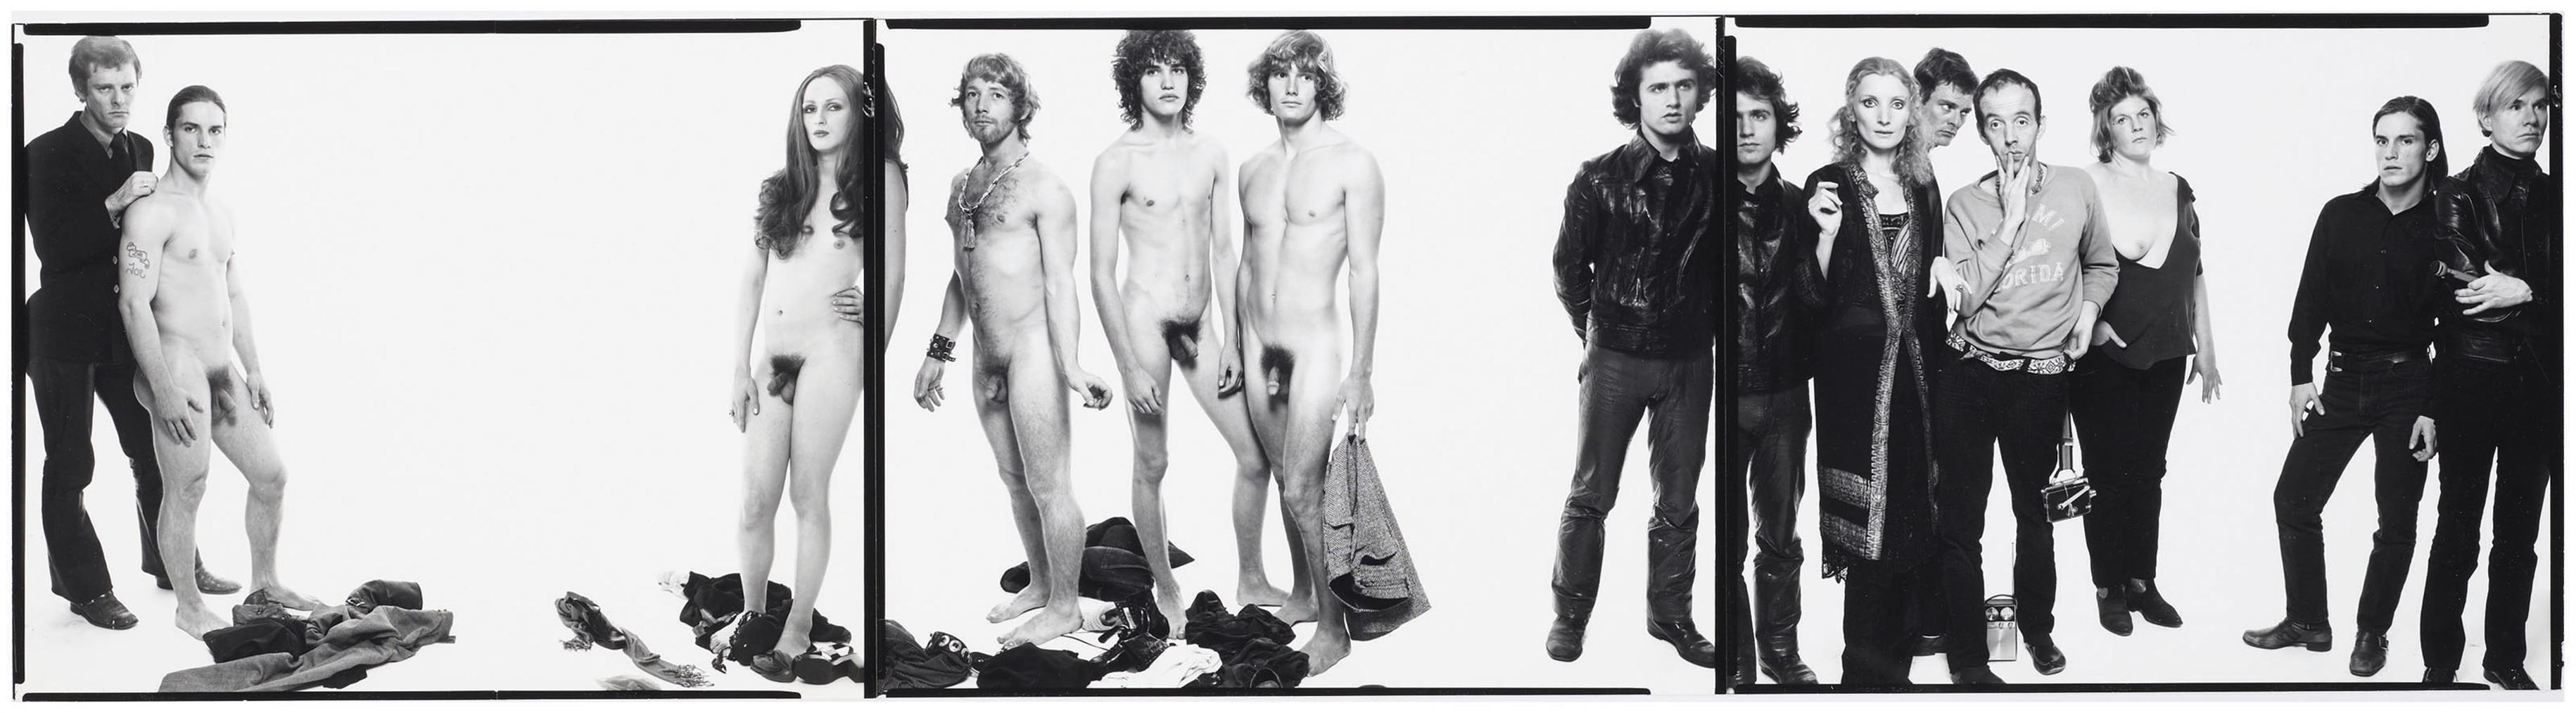 Richard Avedon-Andy Warhol And Members Of The Factory, October 30, 1969-1969